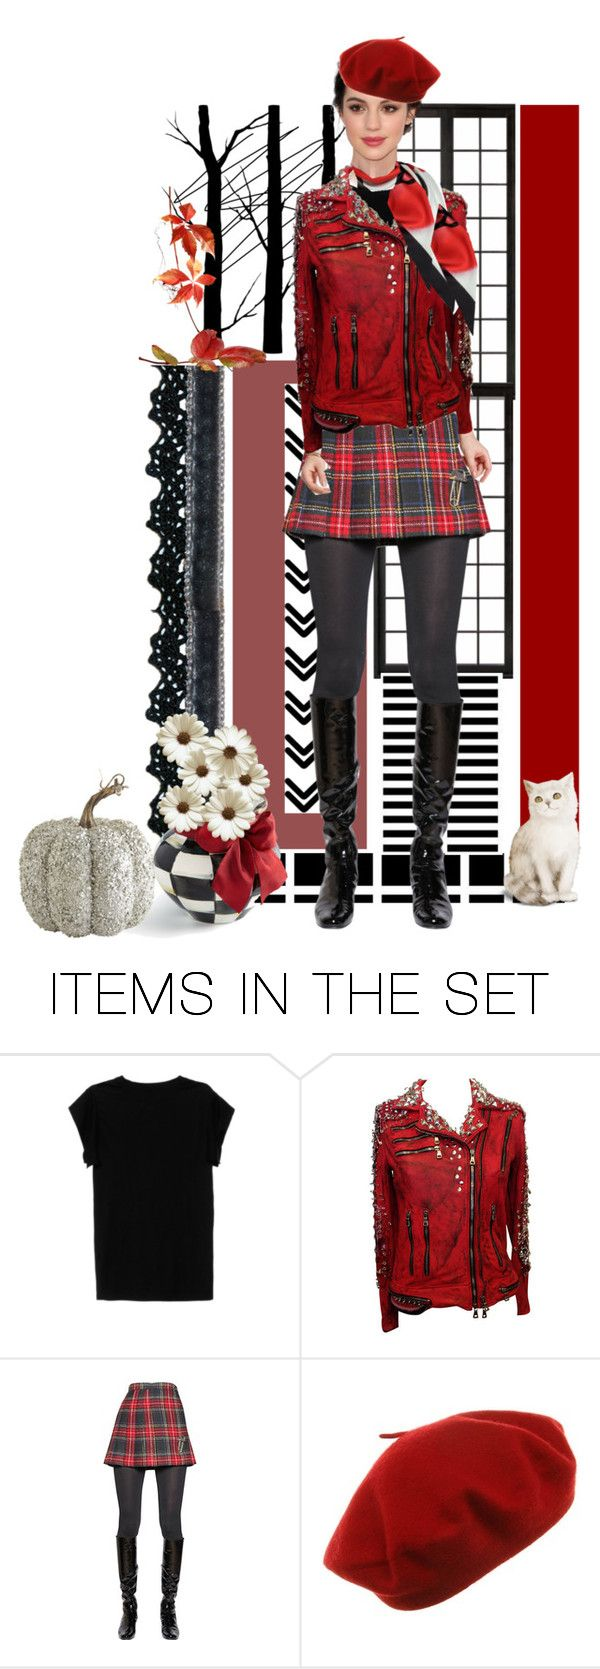 """Red/Black/White"" by skpg ❤ liked on Polyvore featuring art"